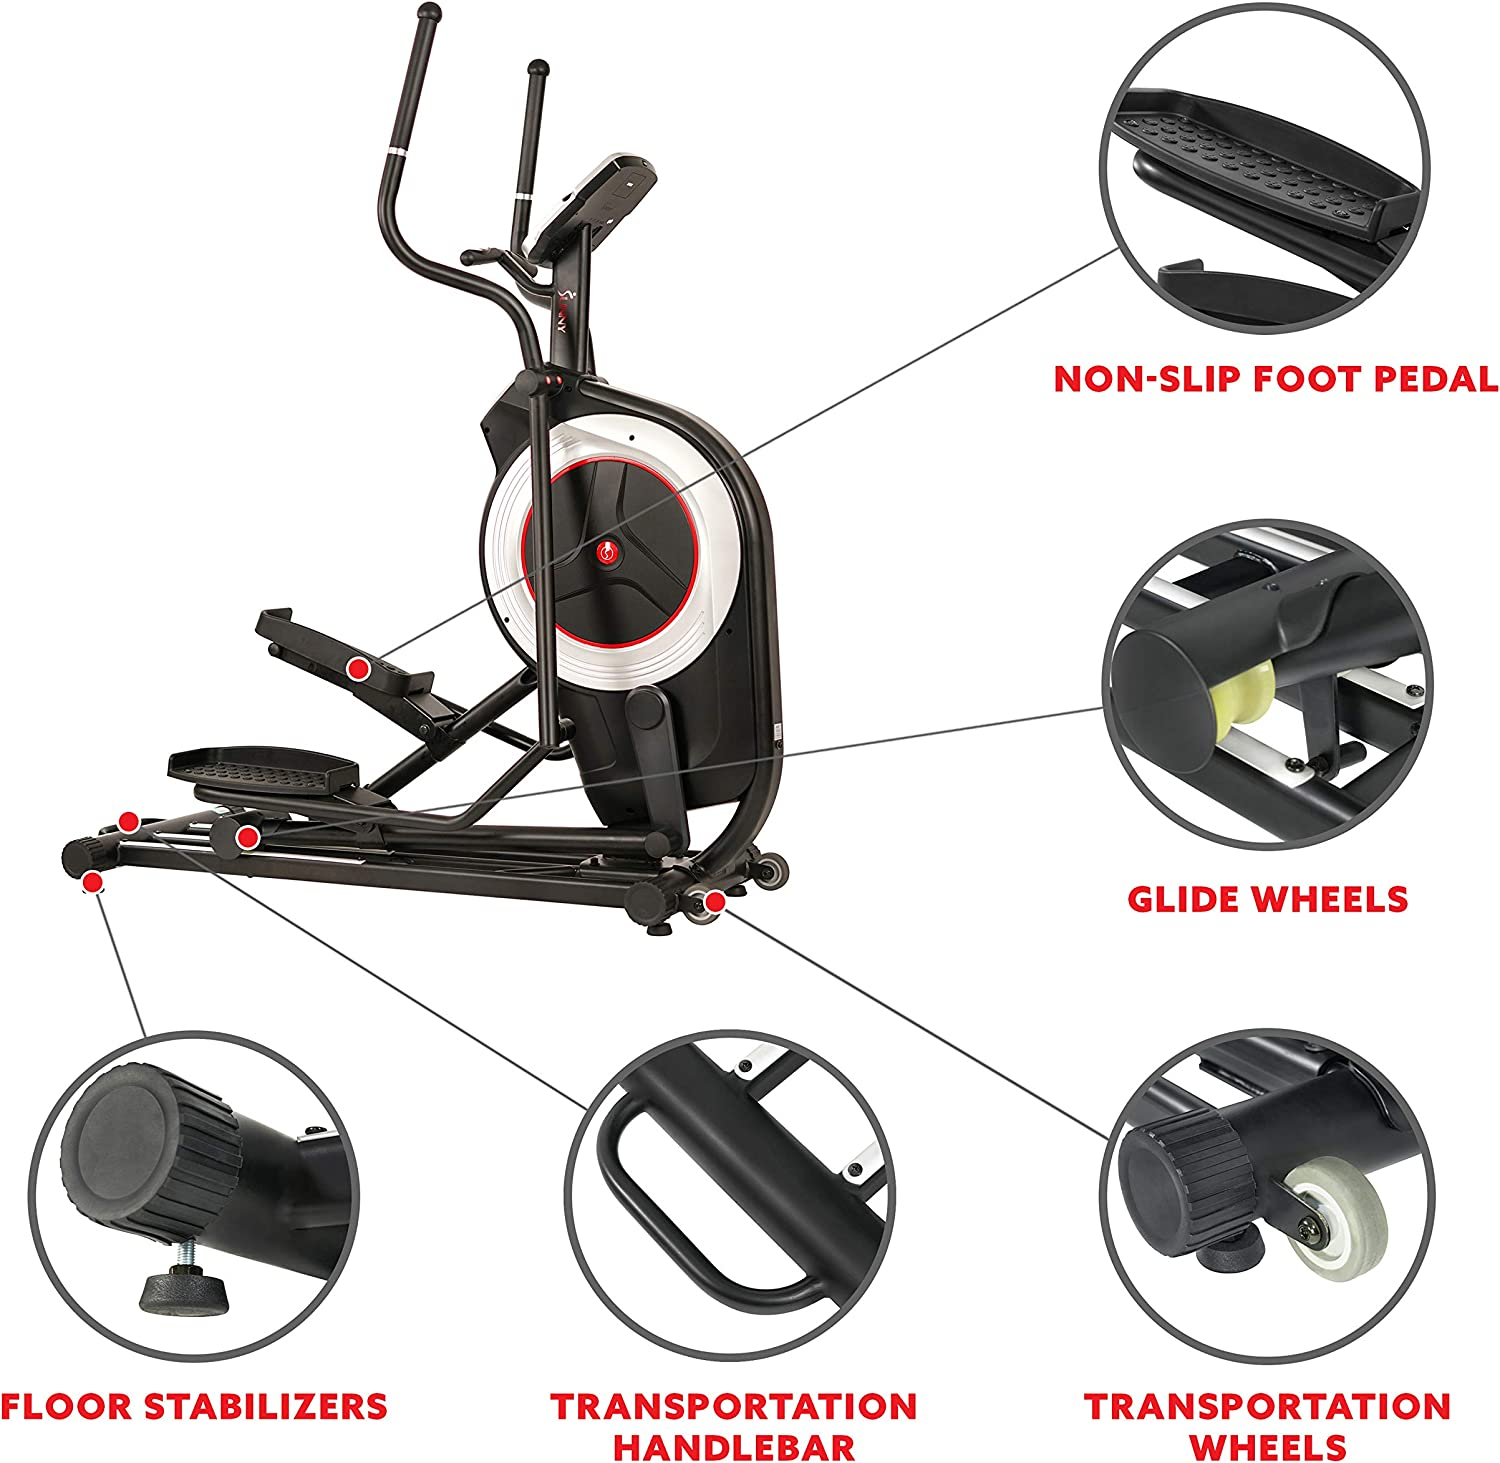 SF-E3875 Sunny Health /& Fitness Motorized Elliptical Trainer Elliptical Machine with Programmable Monitor High Weight Capacity and 20 Inch Stride